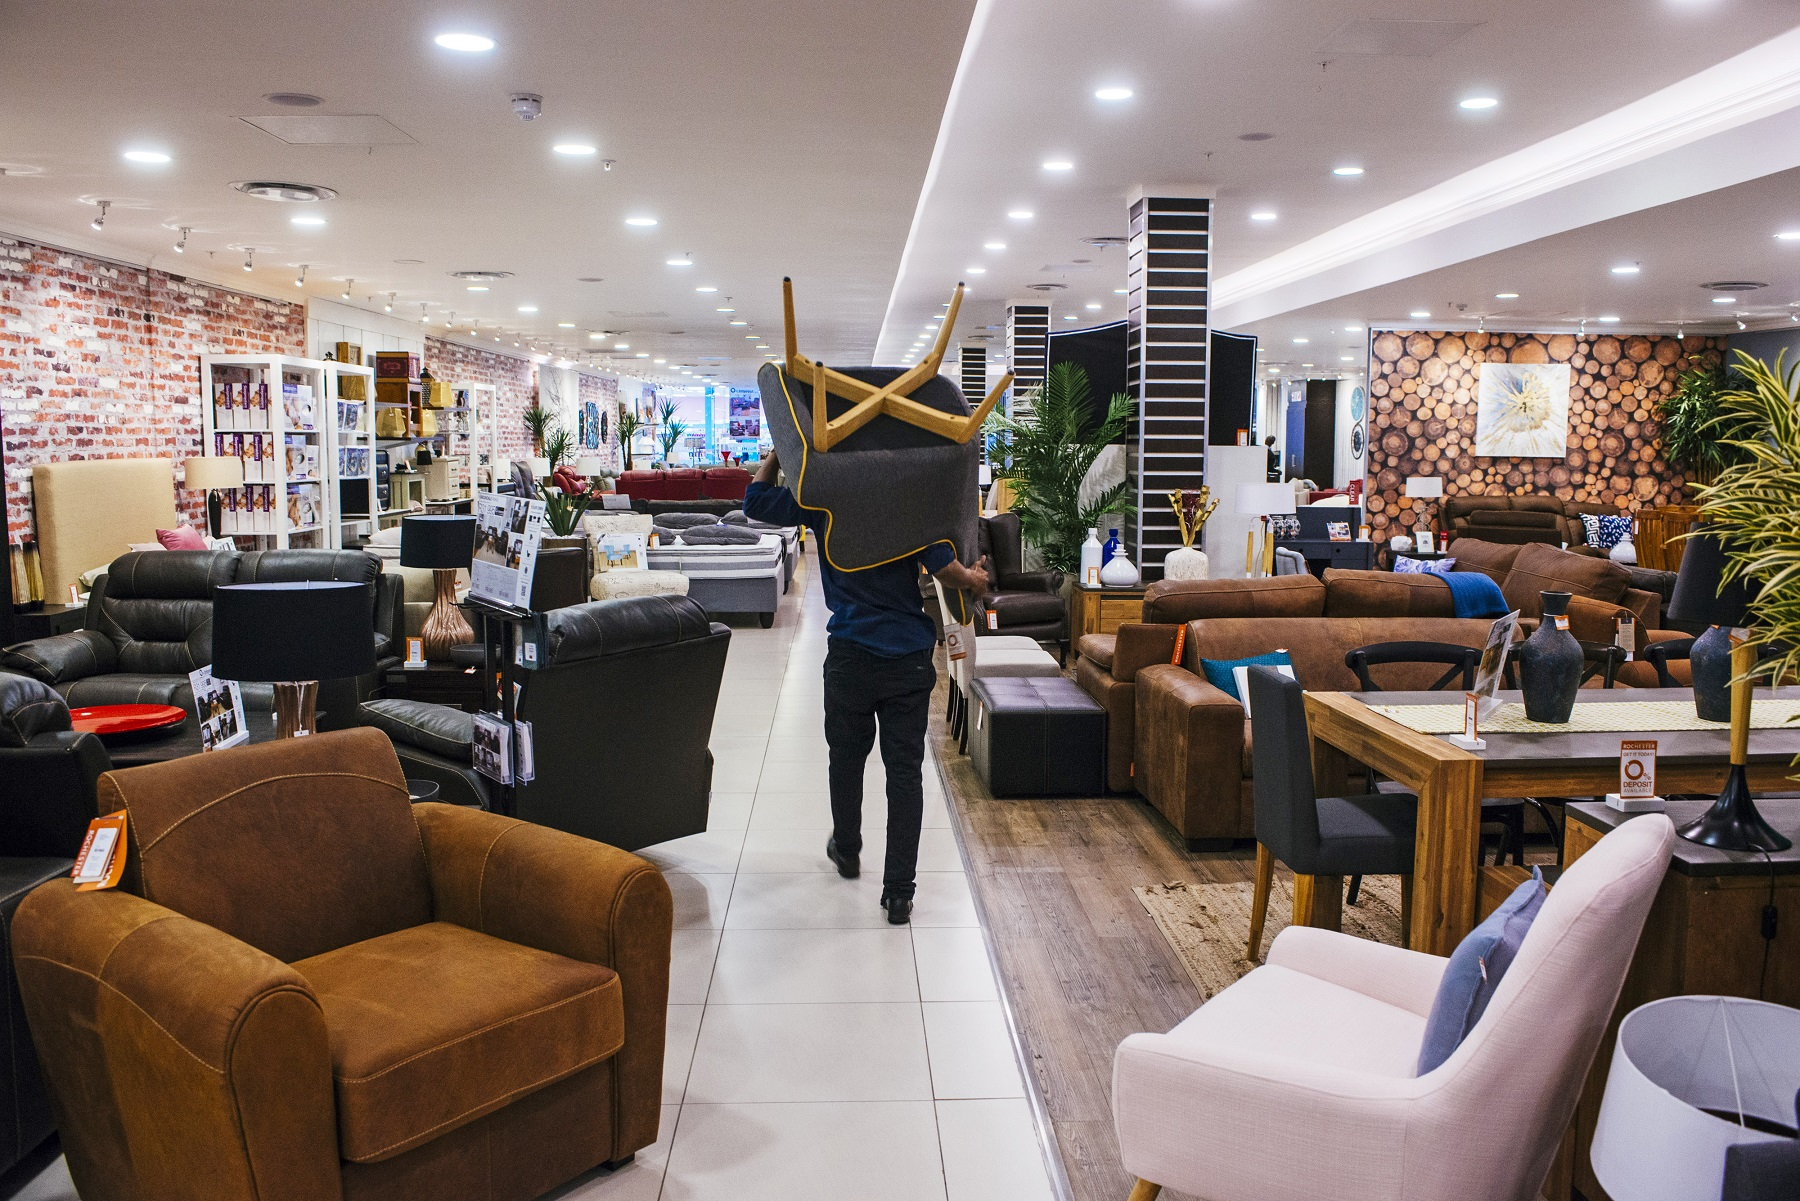 Luxury Furniture Shopping Guide